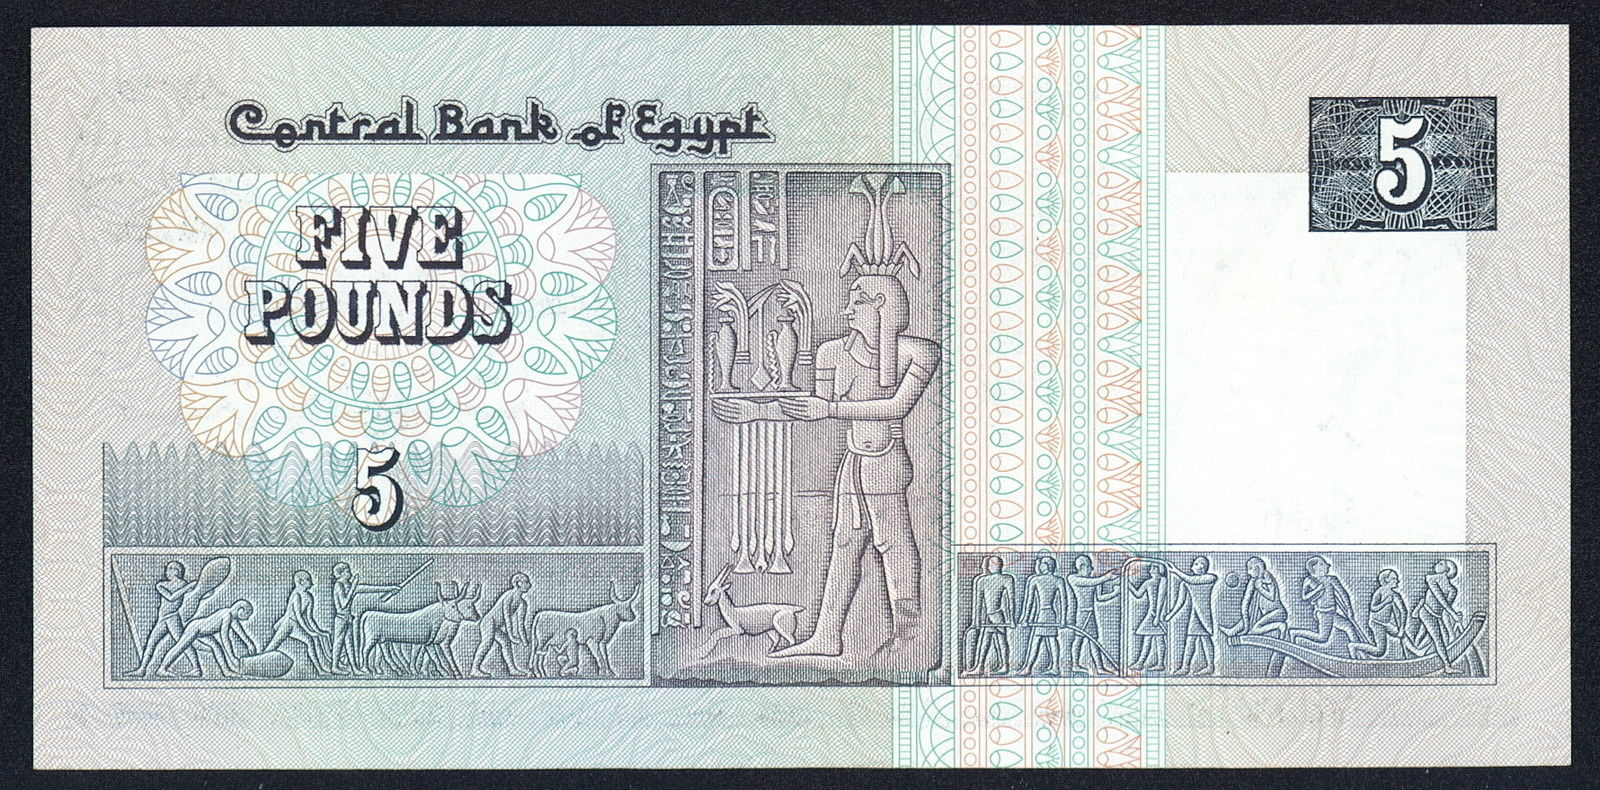 5 egyptian pounds note 1981world banknotes amp coins